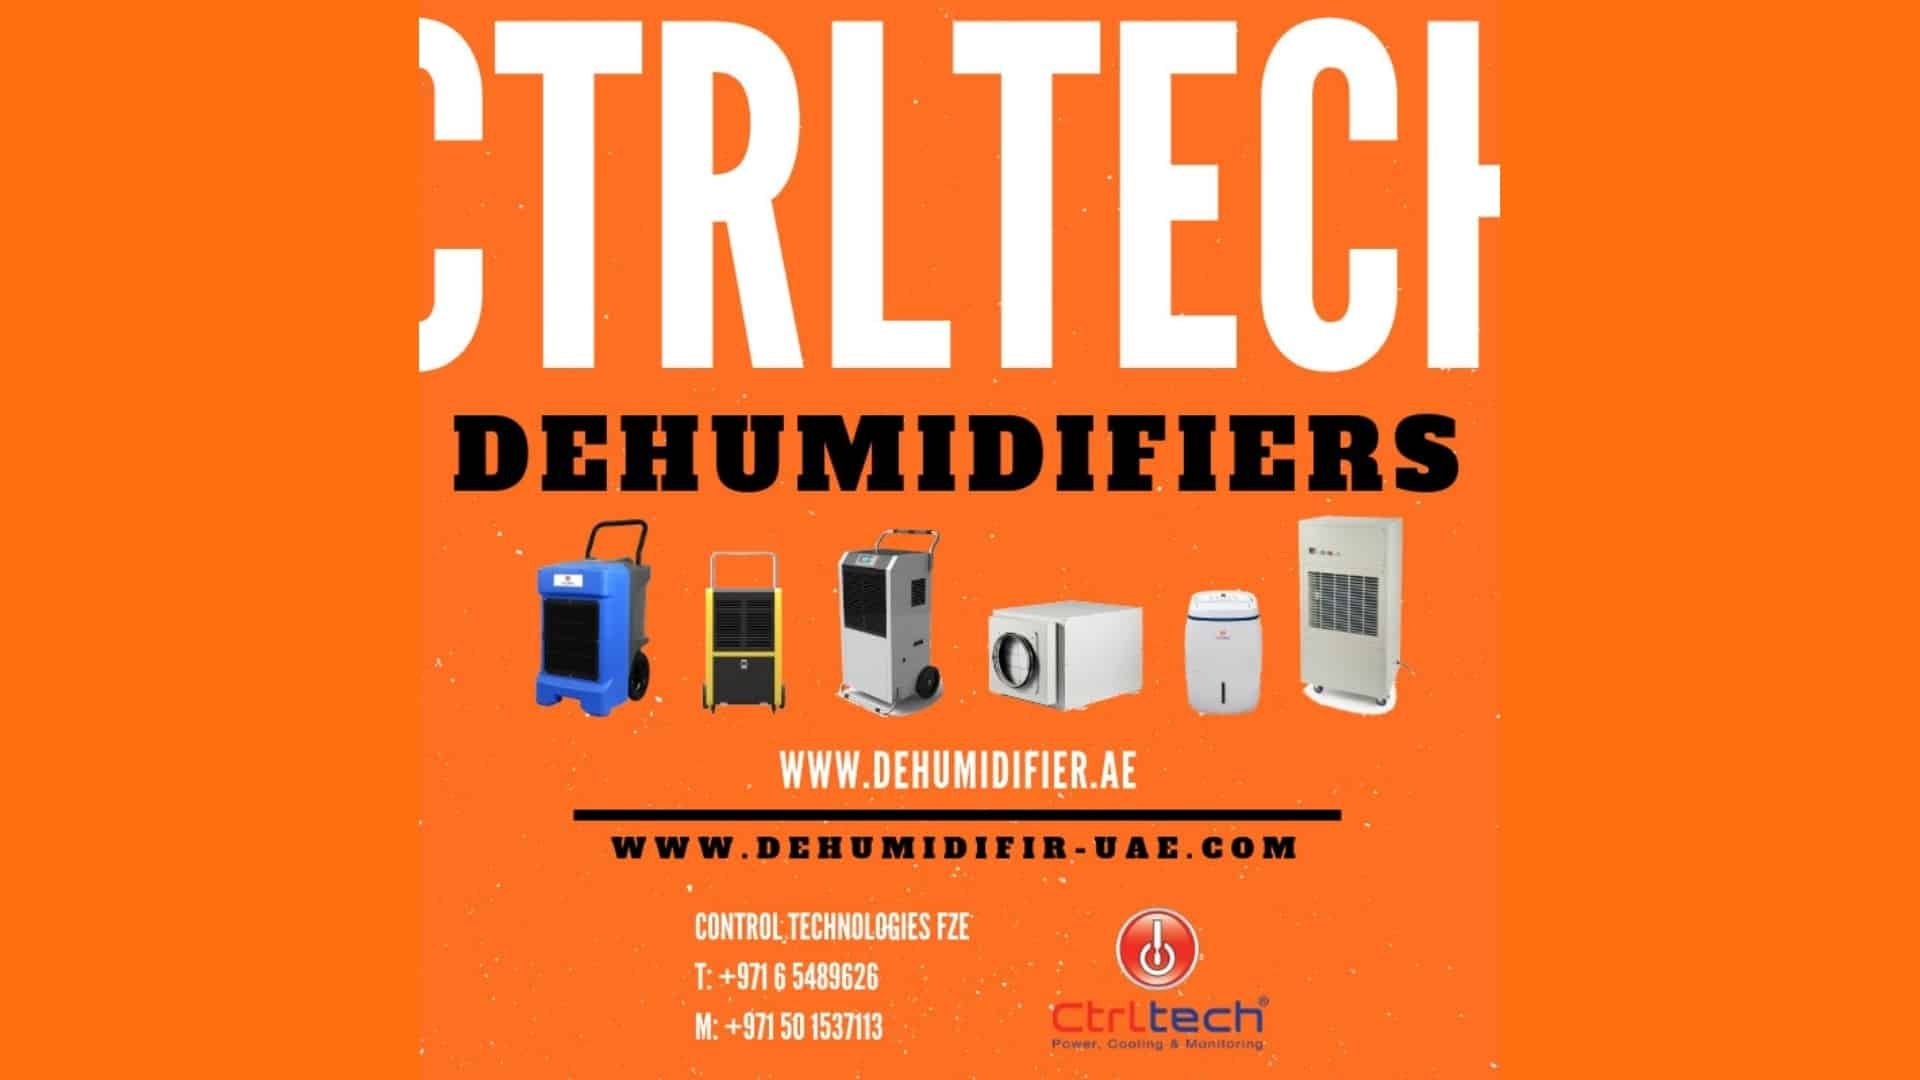 Dehumidifiers; some of the best choices in UAE market